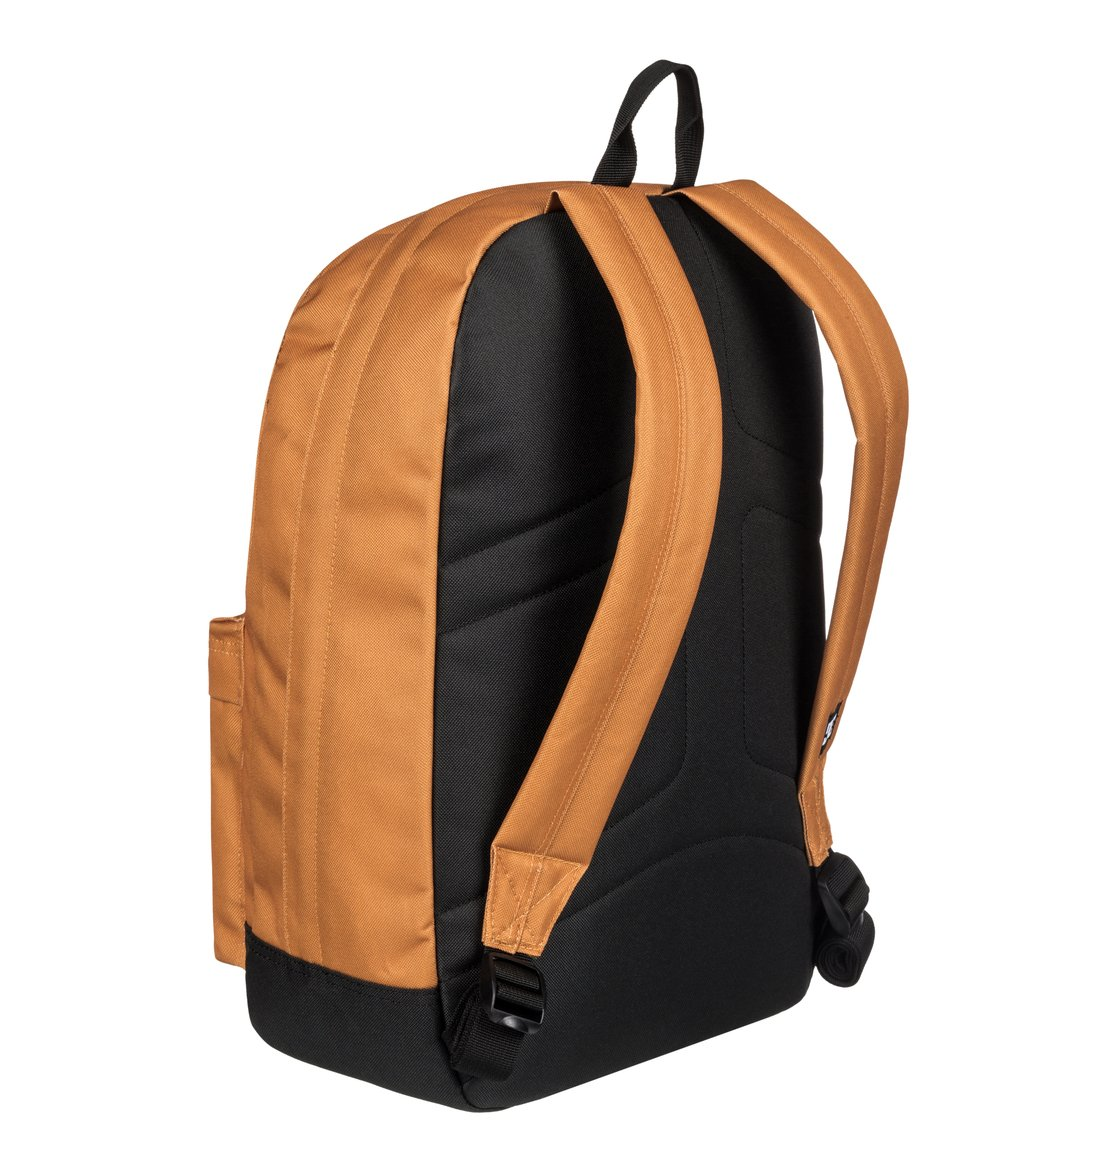 DC-Shoes-Backstack-18-5L-Sac-a-dos-taille-moyenne-pour-Homme-EDYBP03180 miniature 14